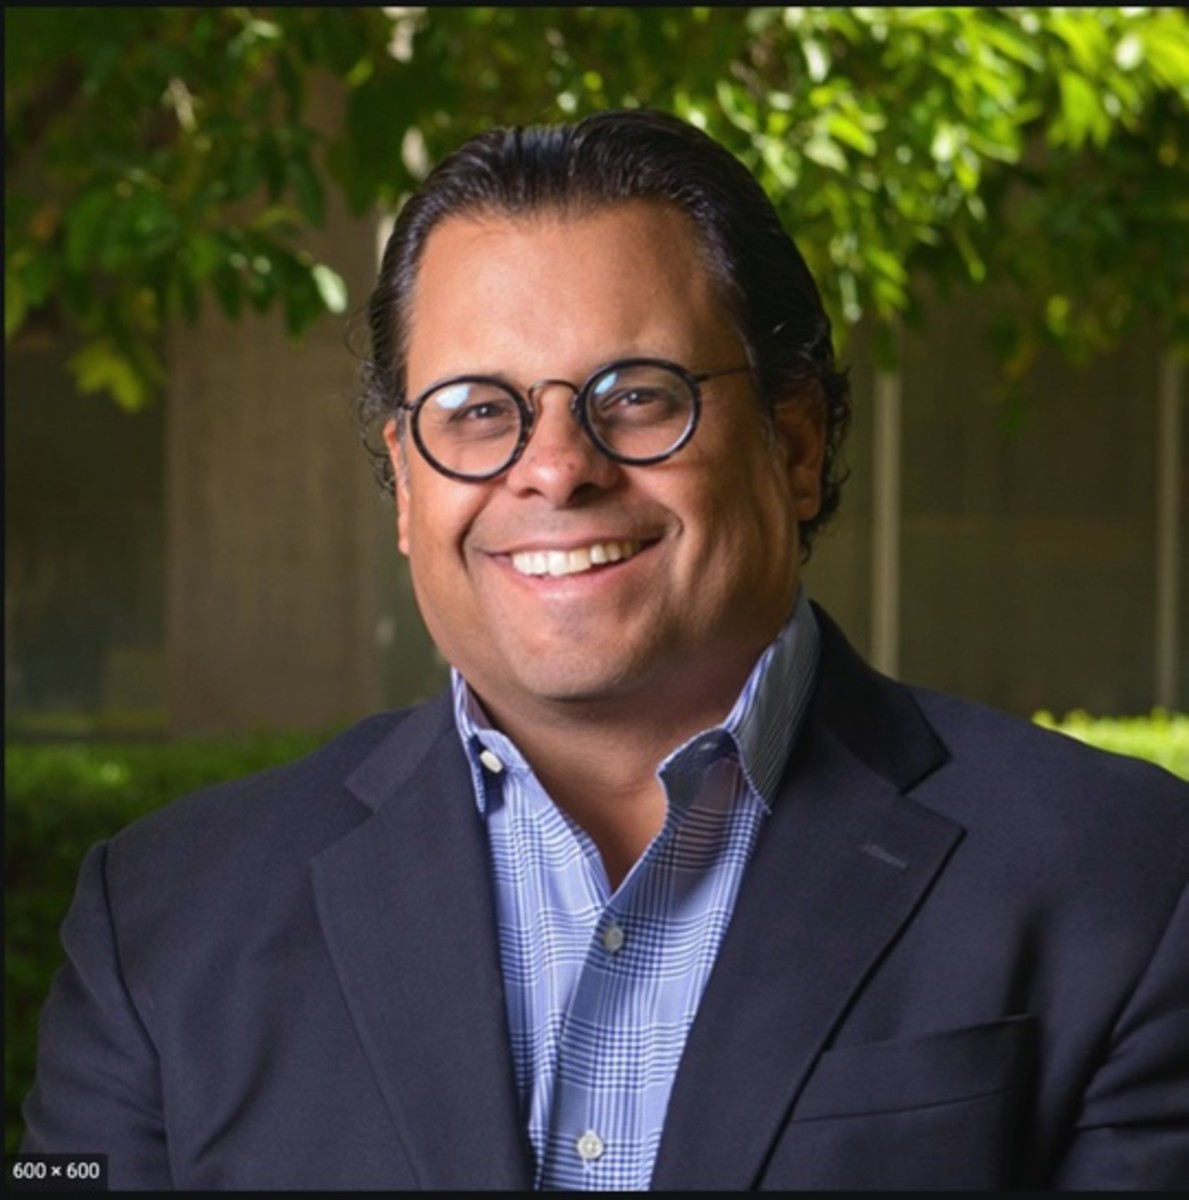 Bryan Brayboy, Lumbee, President's Professor (designation for outstanding service to students), and vice president for social advancement, Arizona State University. (Photo courtesy of Arizona State University).